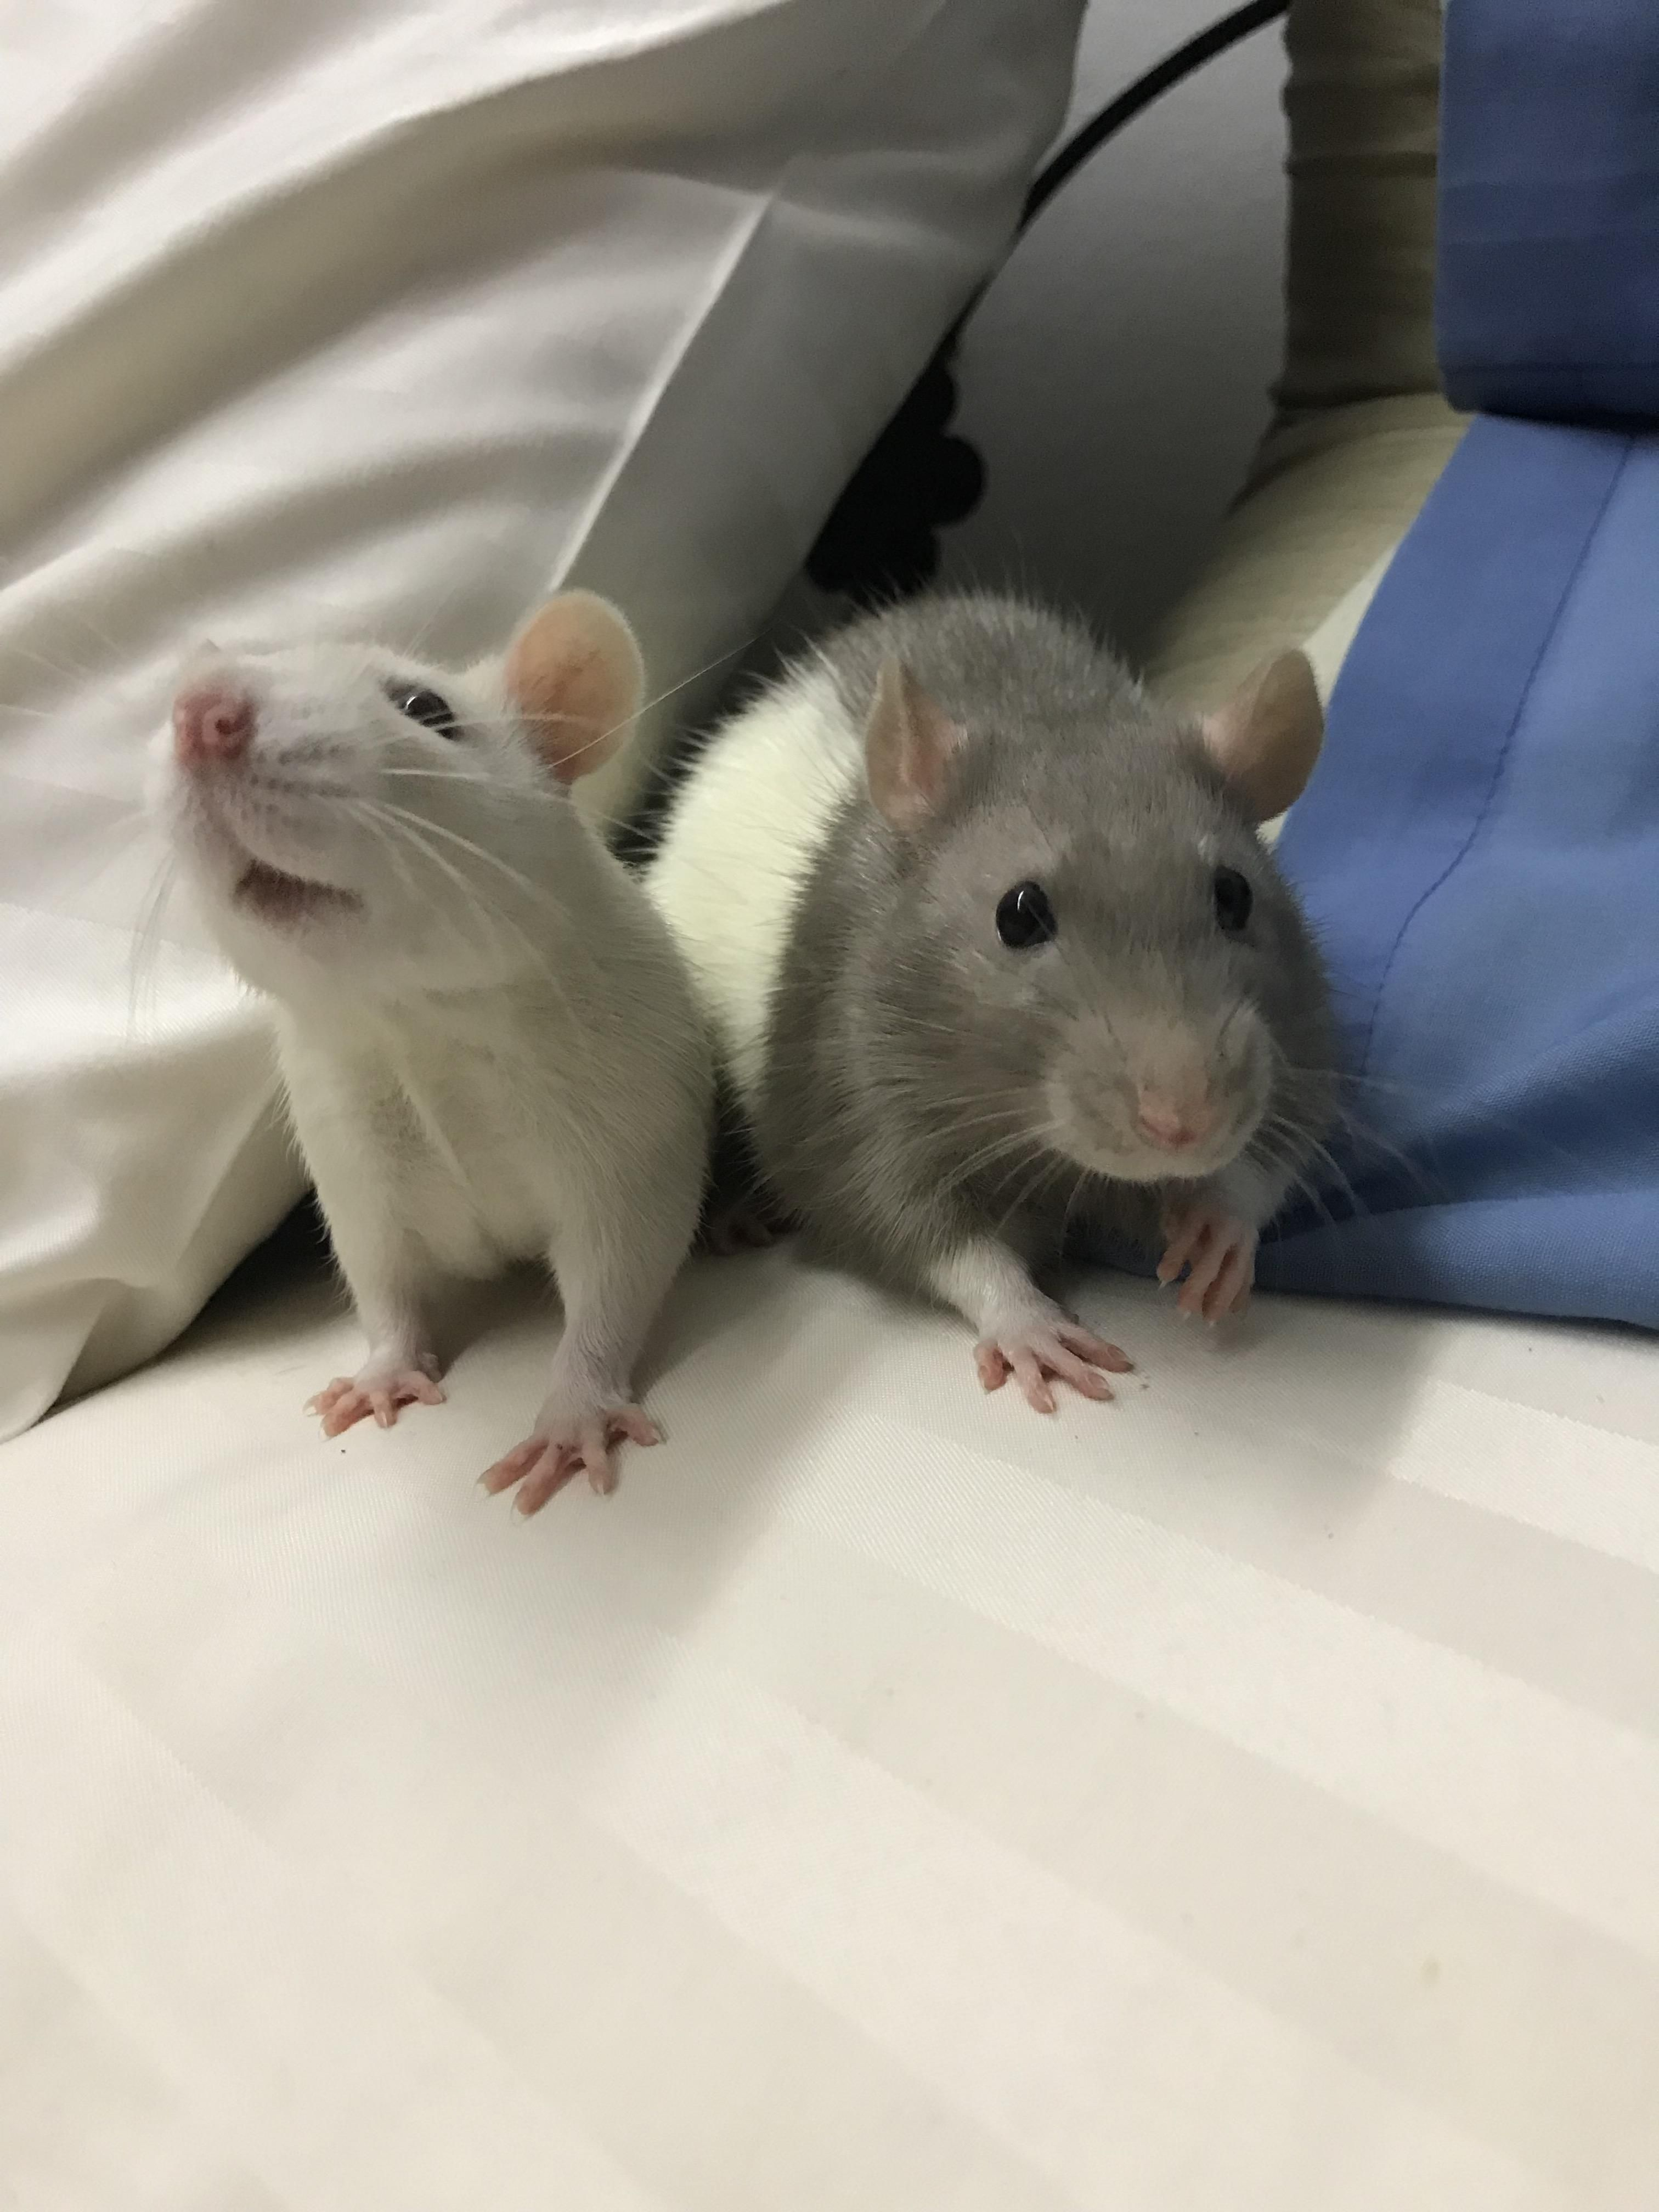 Chubs And Chubster Not Their Real Names Aww Cute Rat